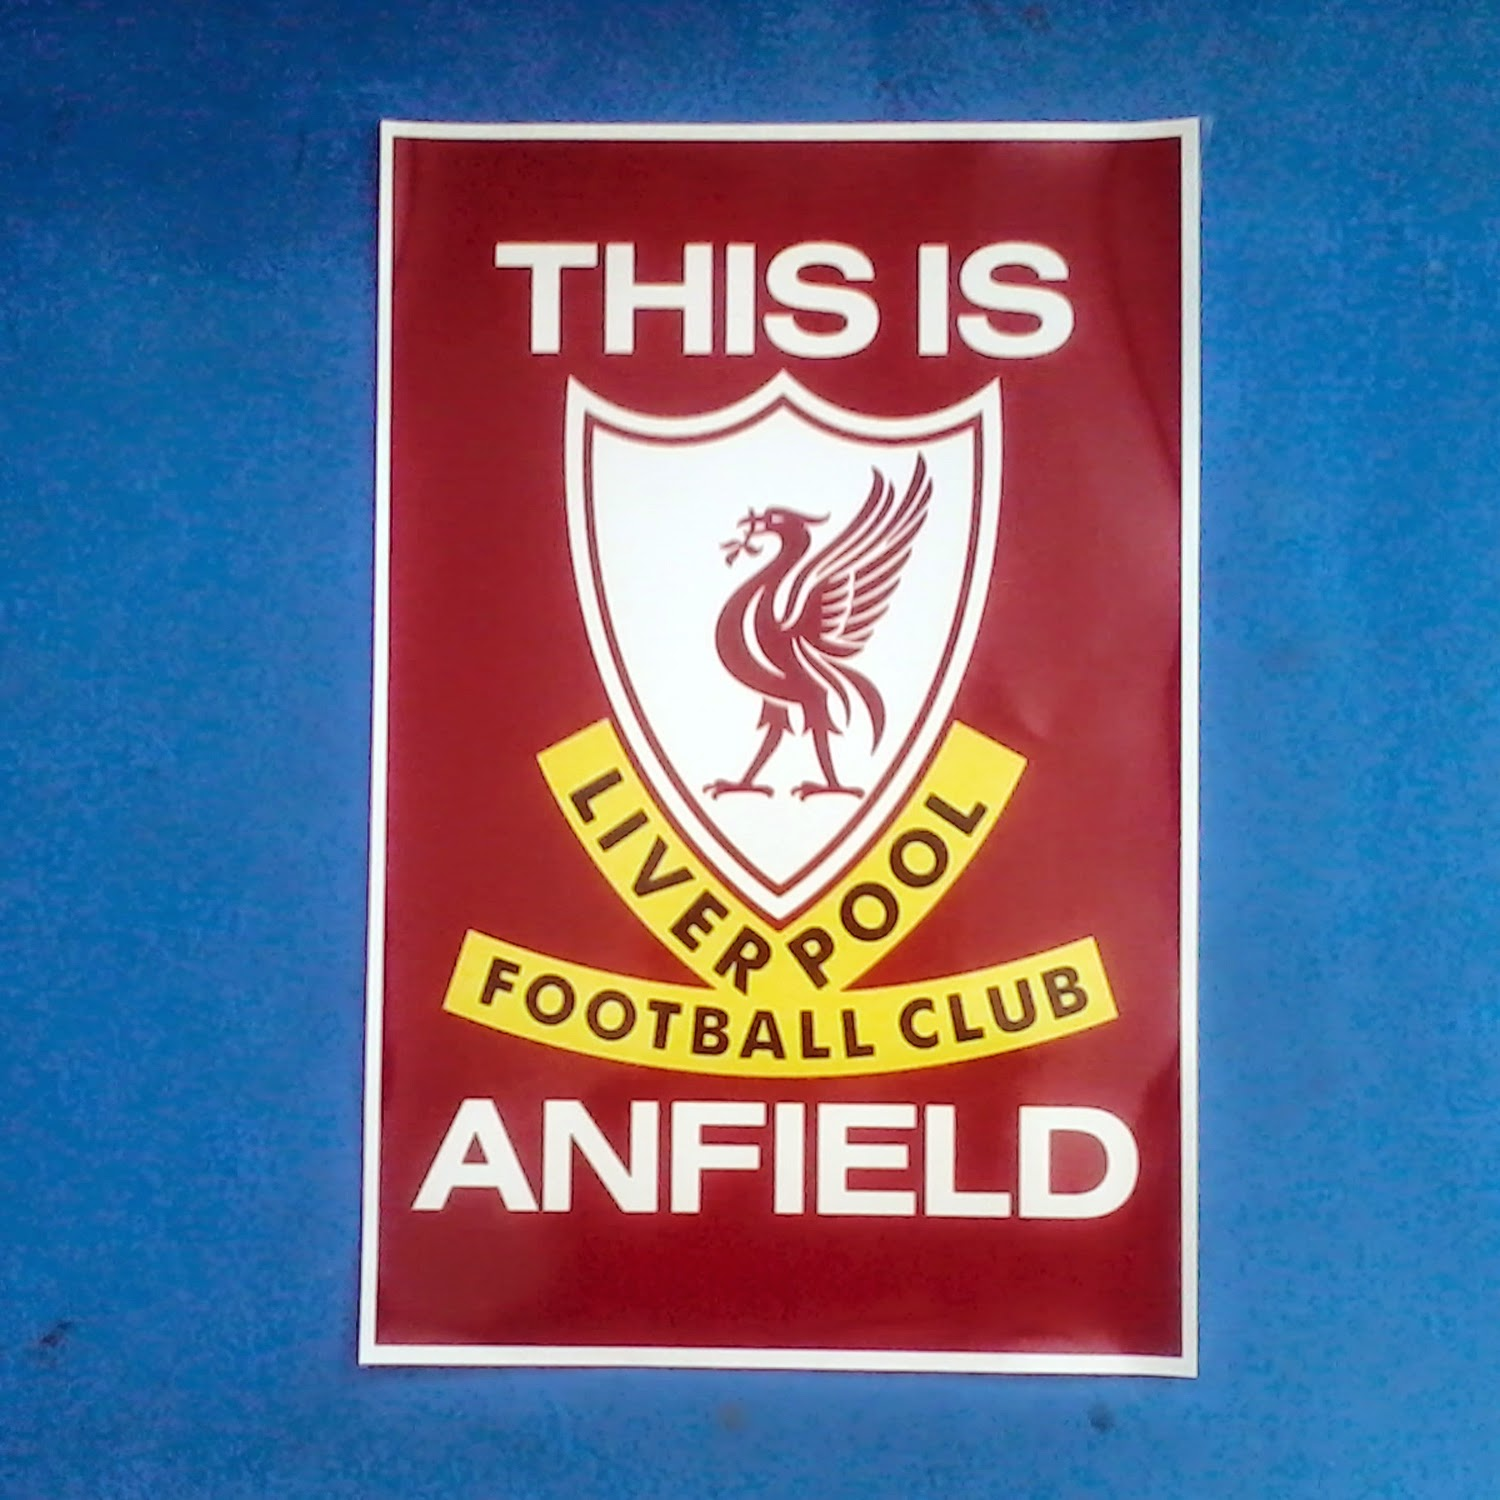 jual Poster A3 Football Club Liver Pool Anfield murah